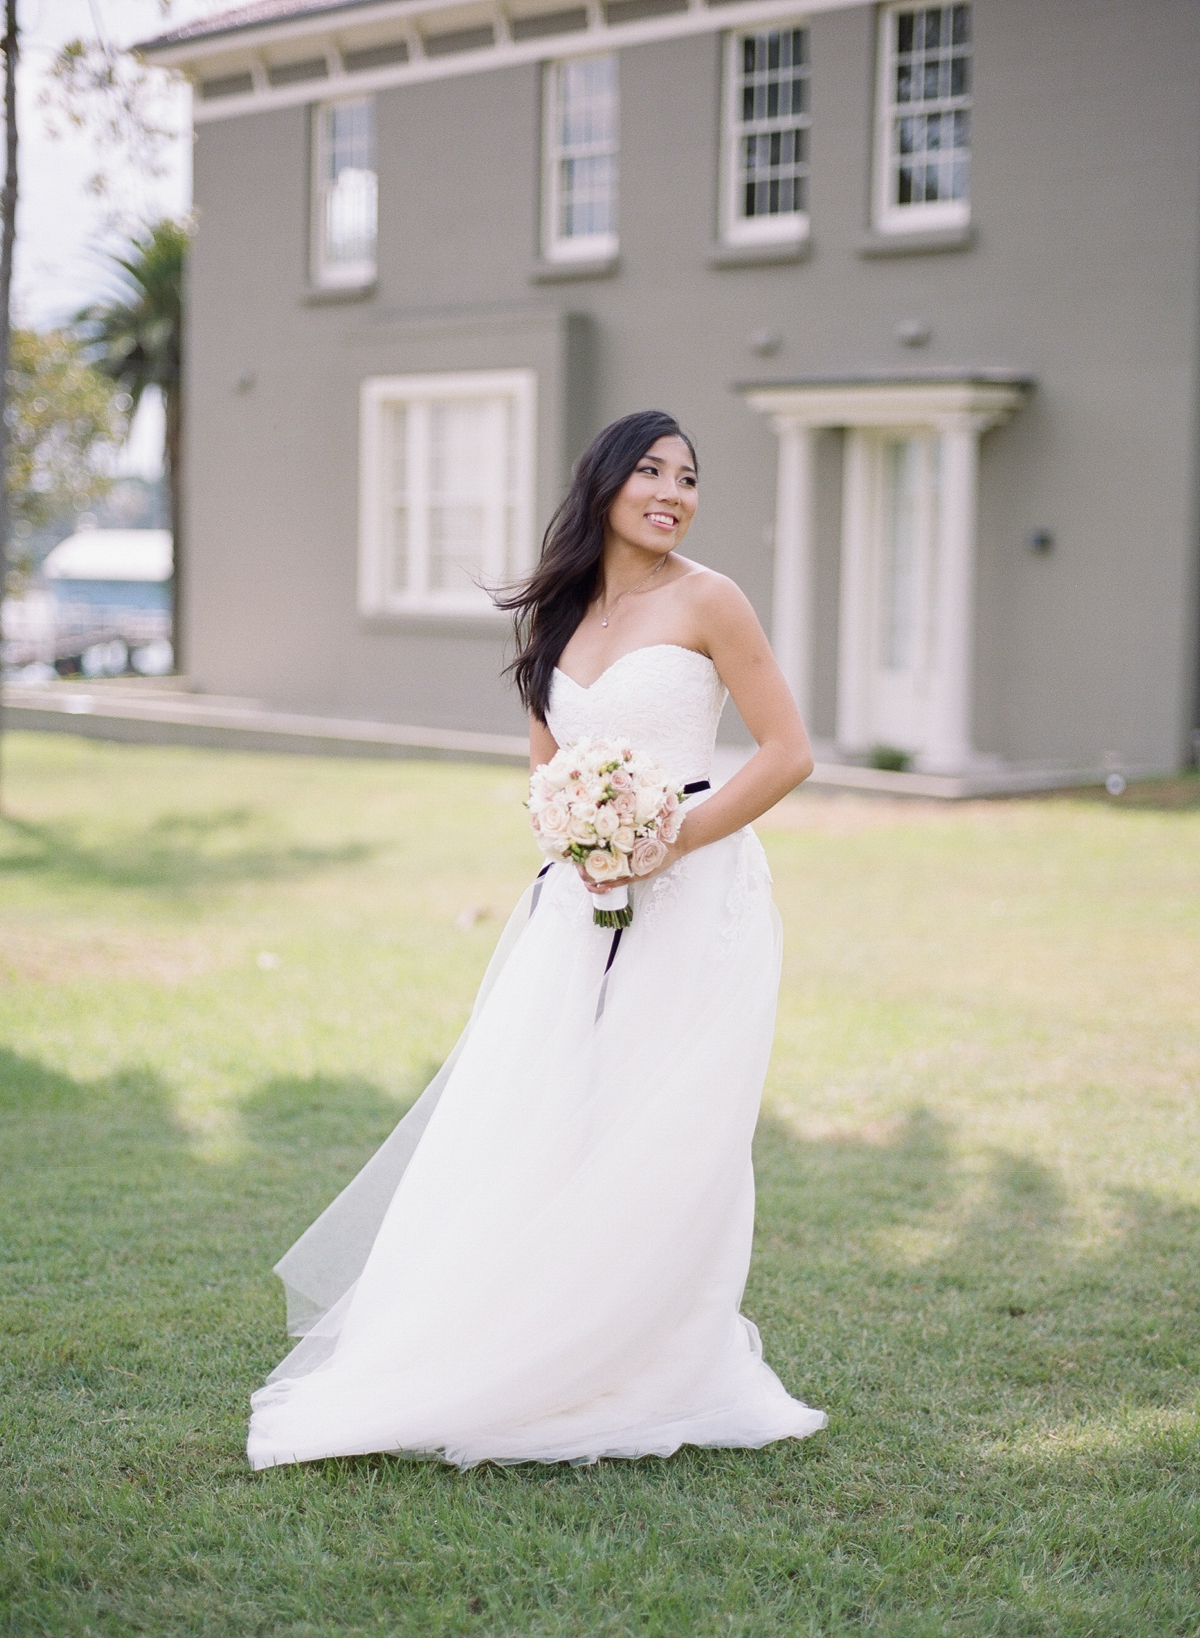 Watsons Bay wedding by Mr Edwards Photography_0737_0997.jpg